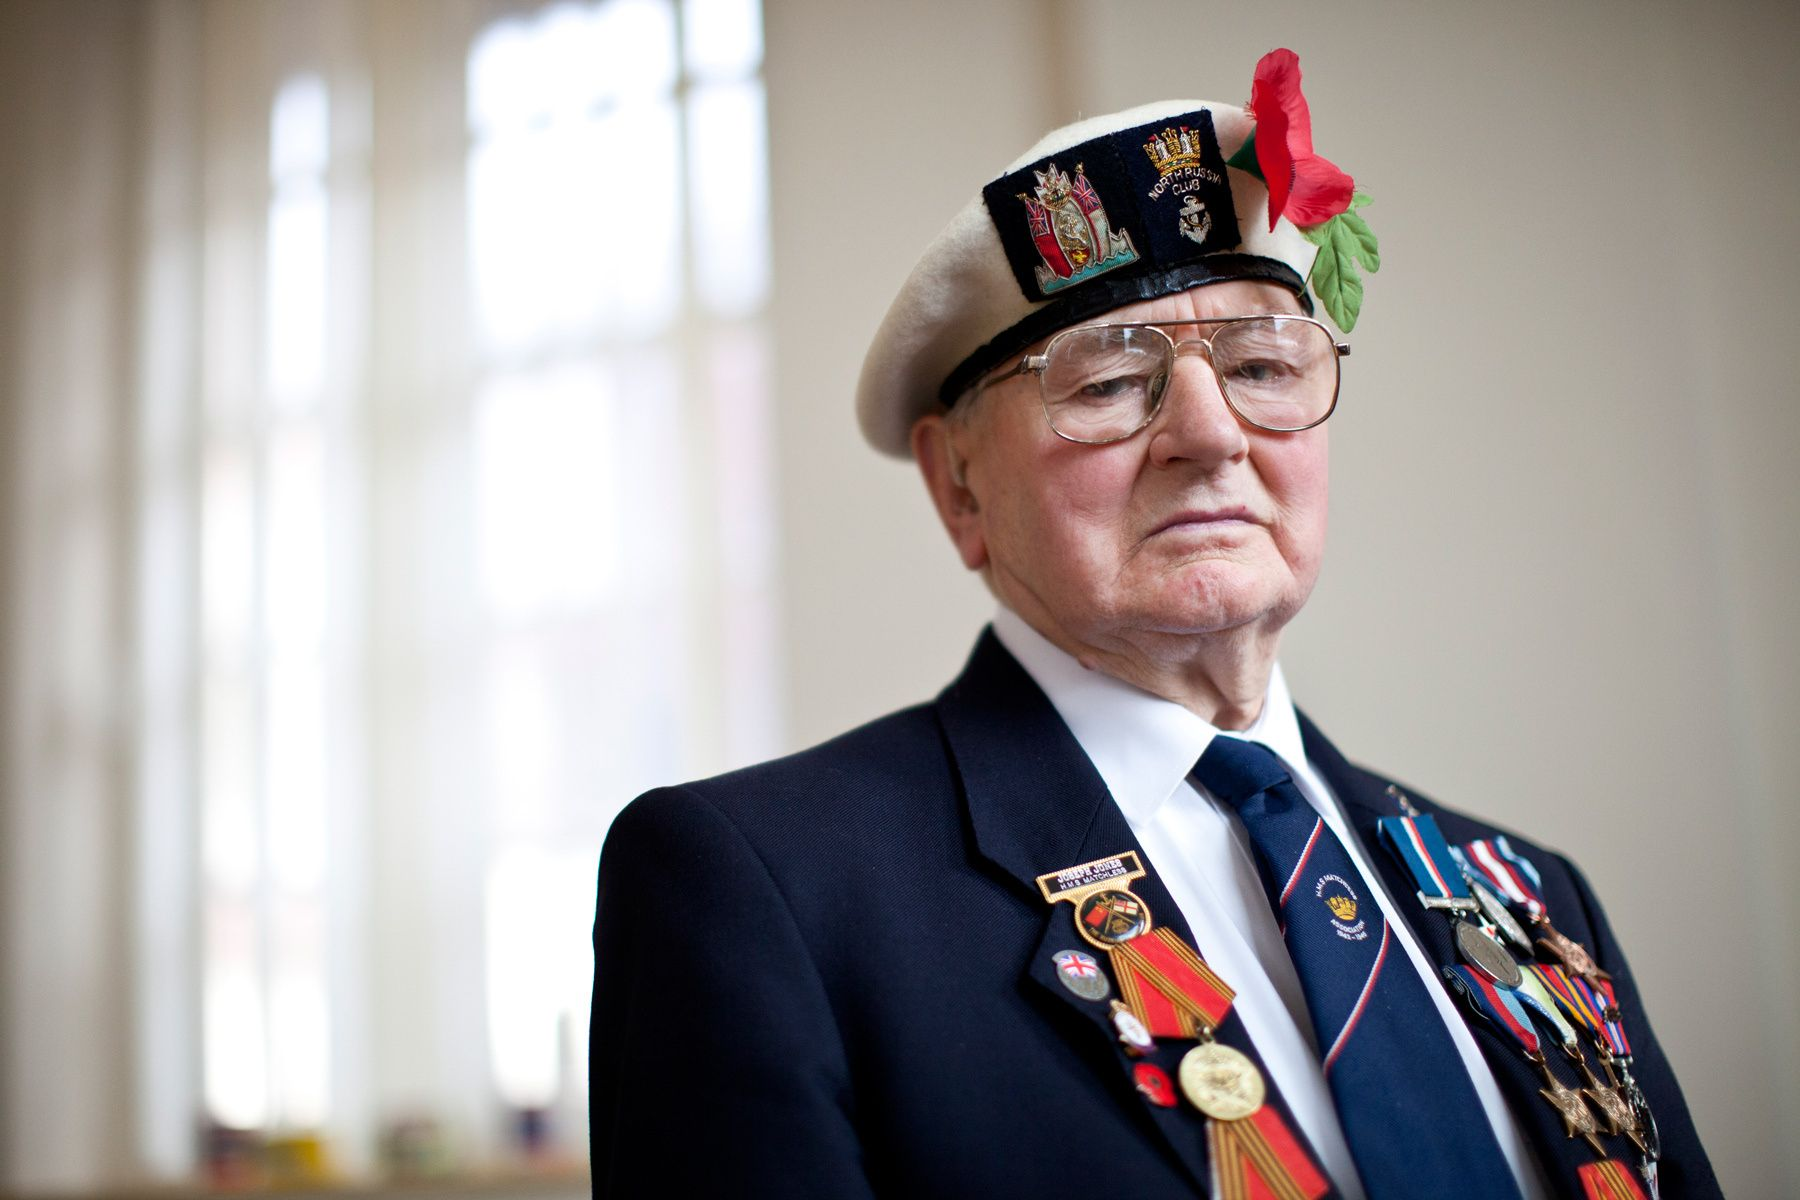 1normandy_landings_ww2_veteran.jpg